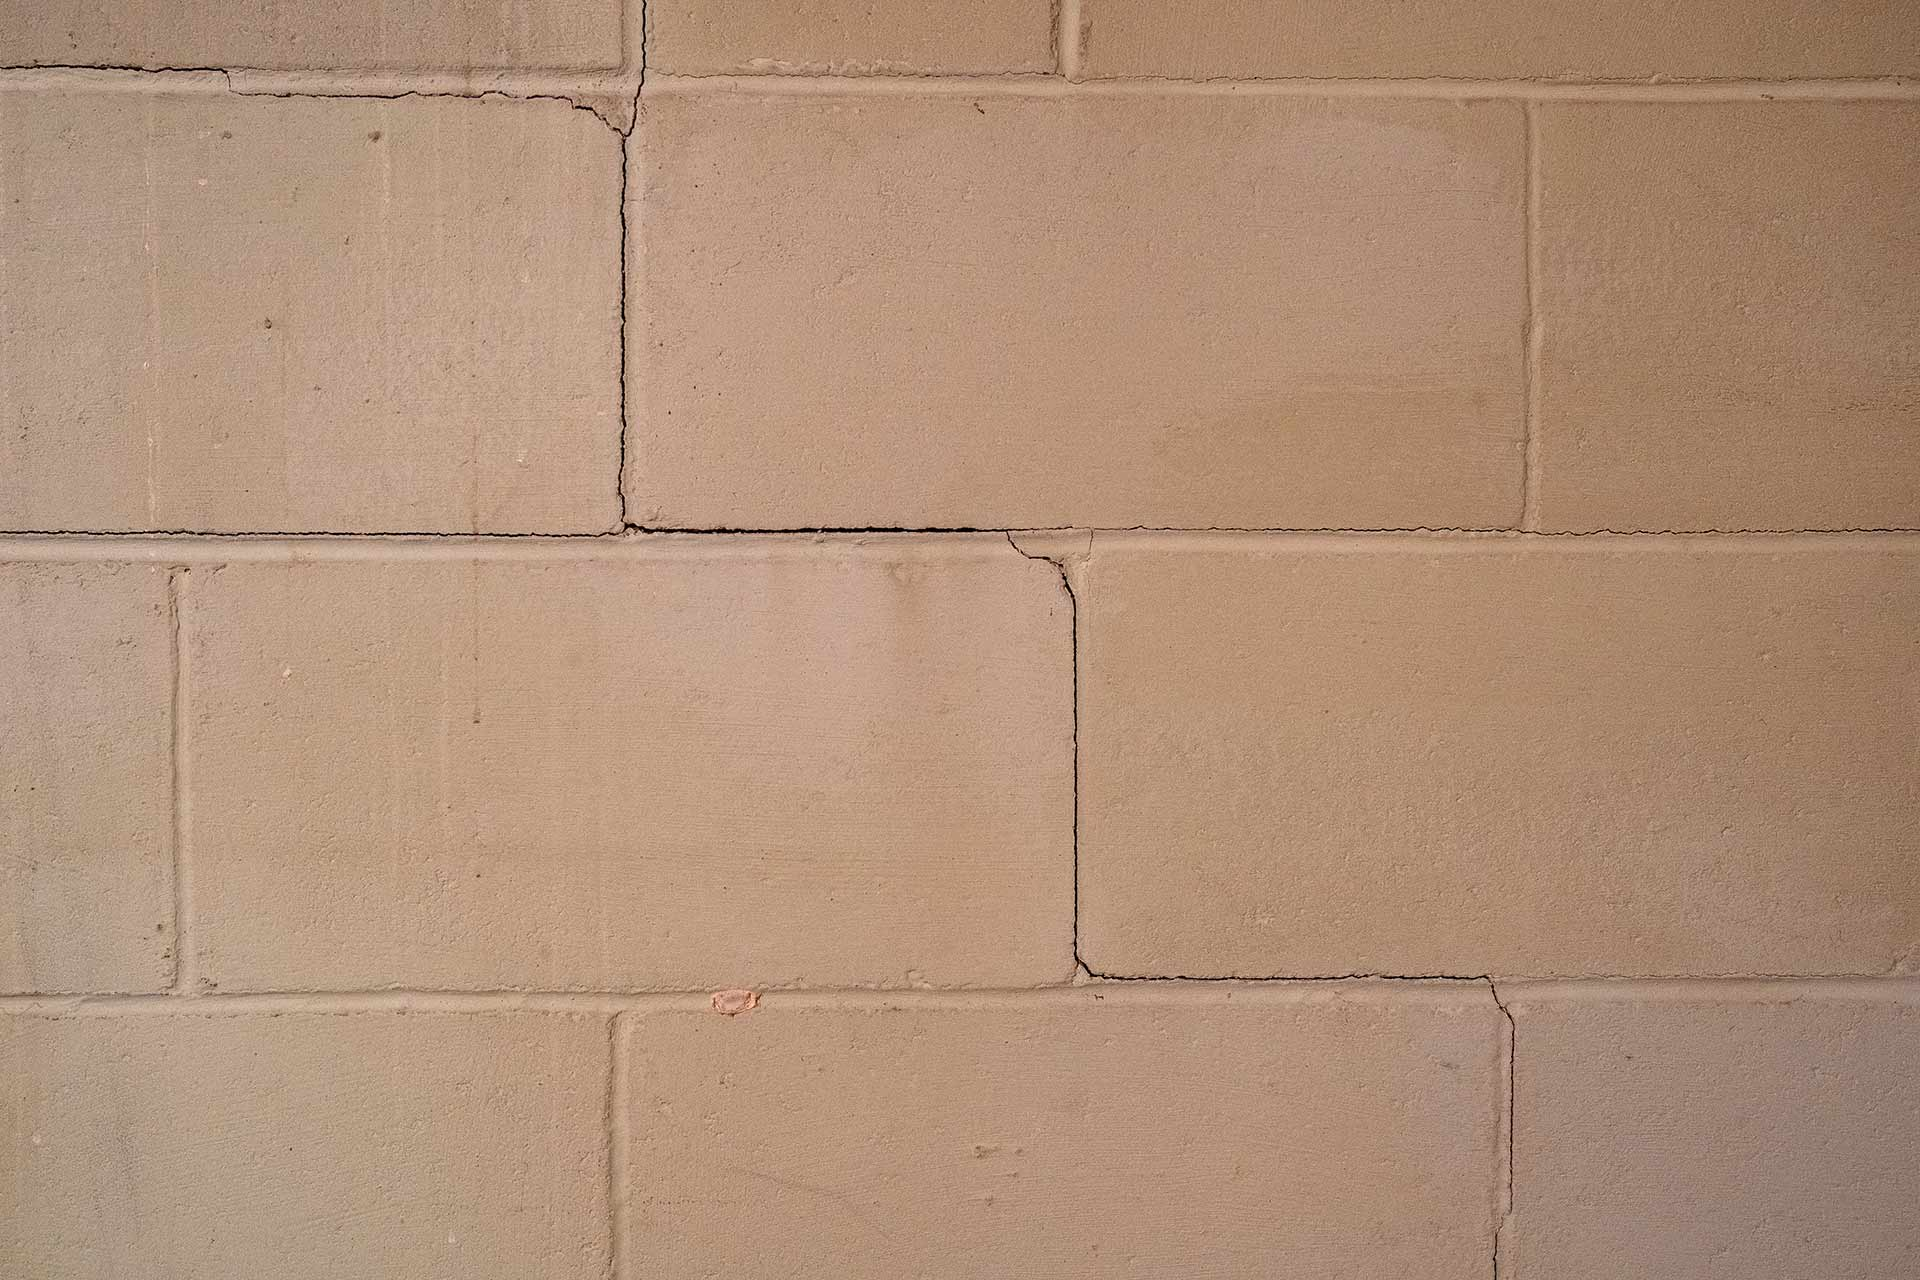 crawl space cracked wall